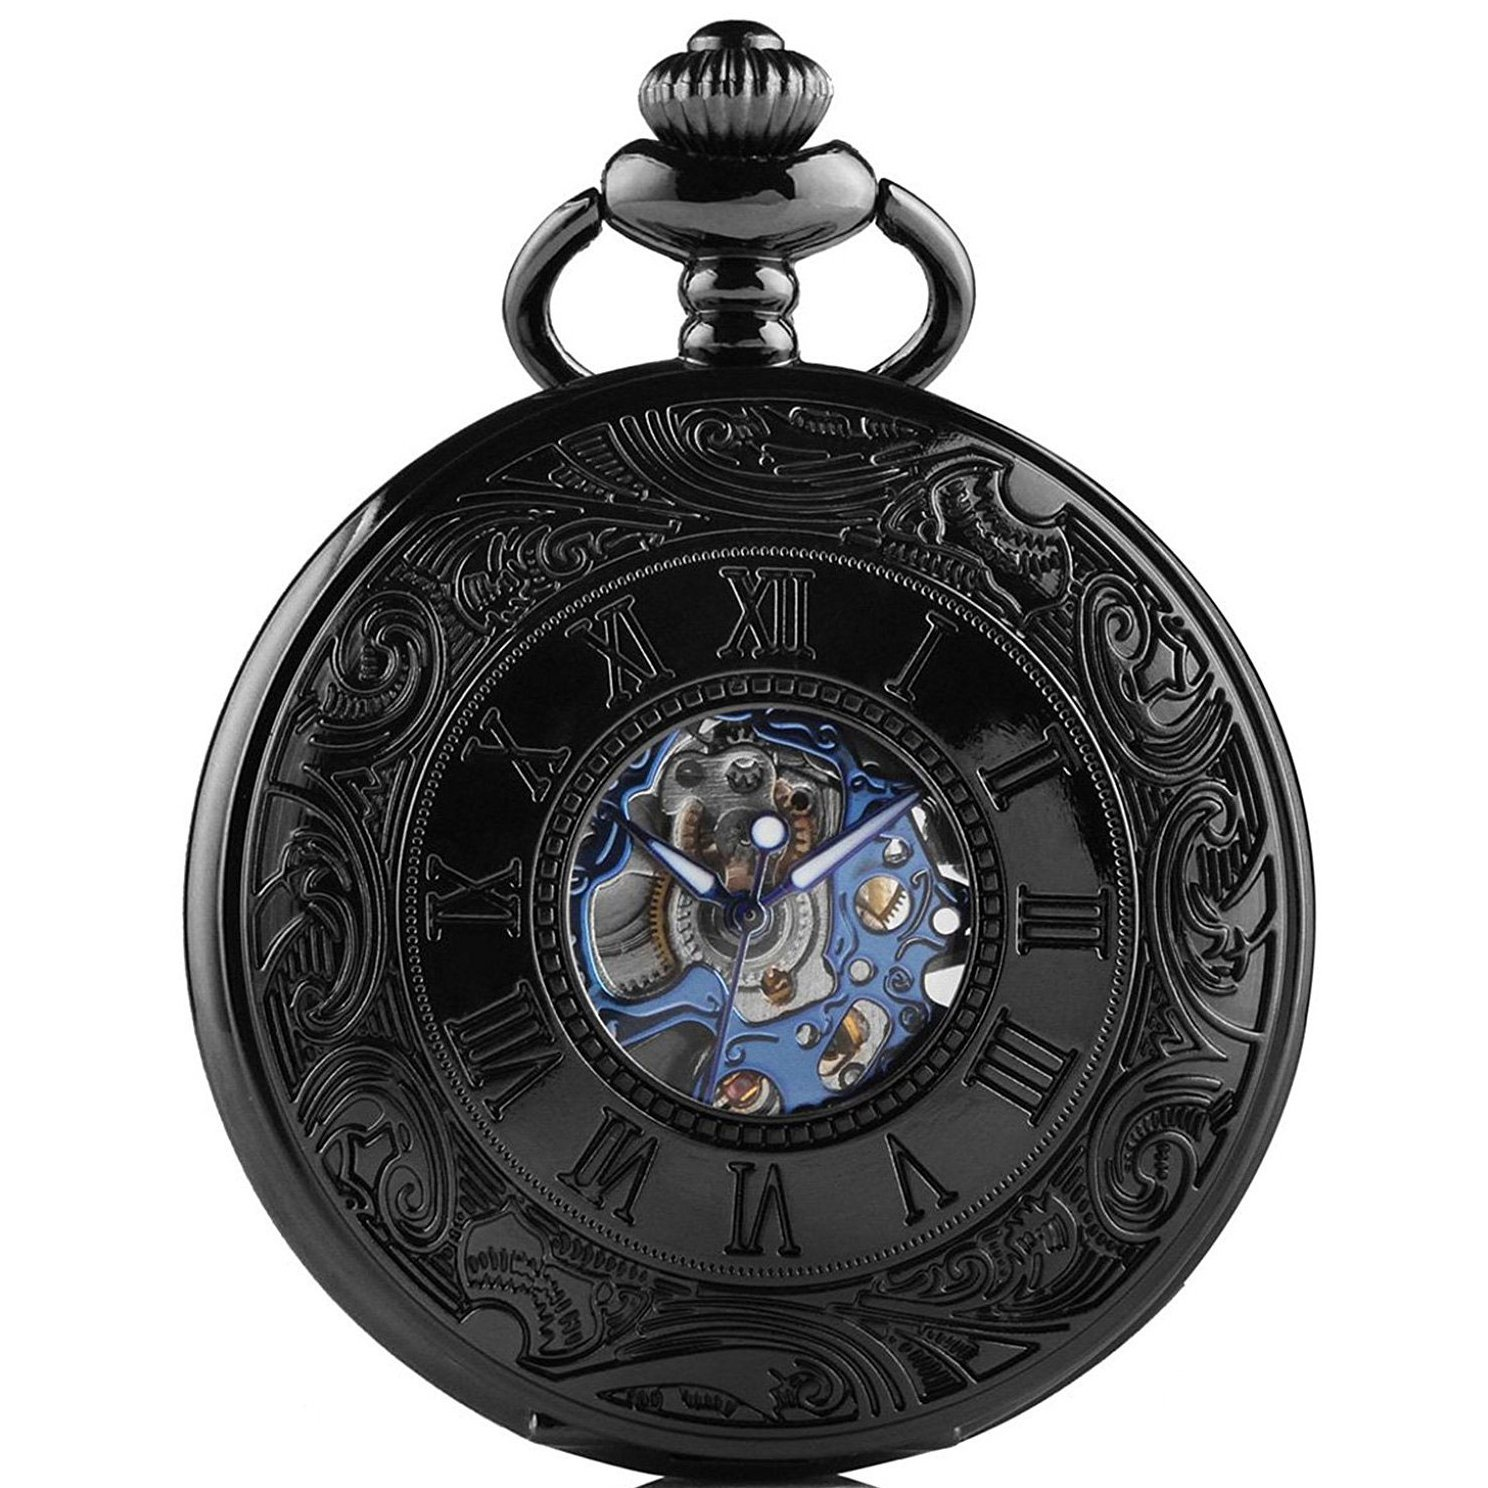 MEIGUANG Steampunk Blue Hands Roman letters Skeleton Mechanical Pocket Watch with Chain for Men by MEIGUANG